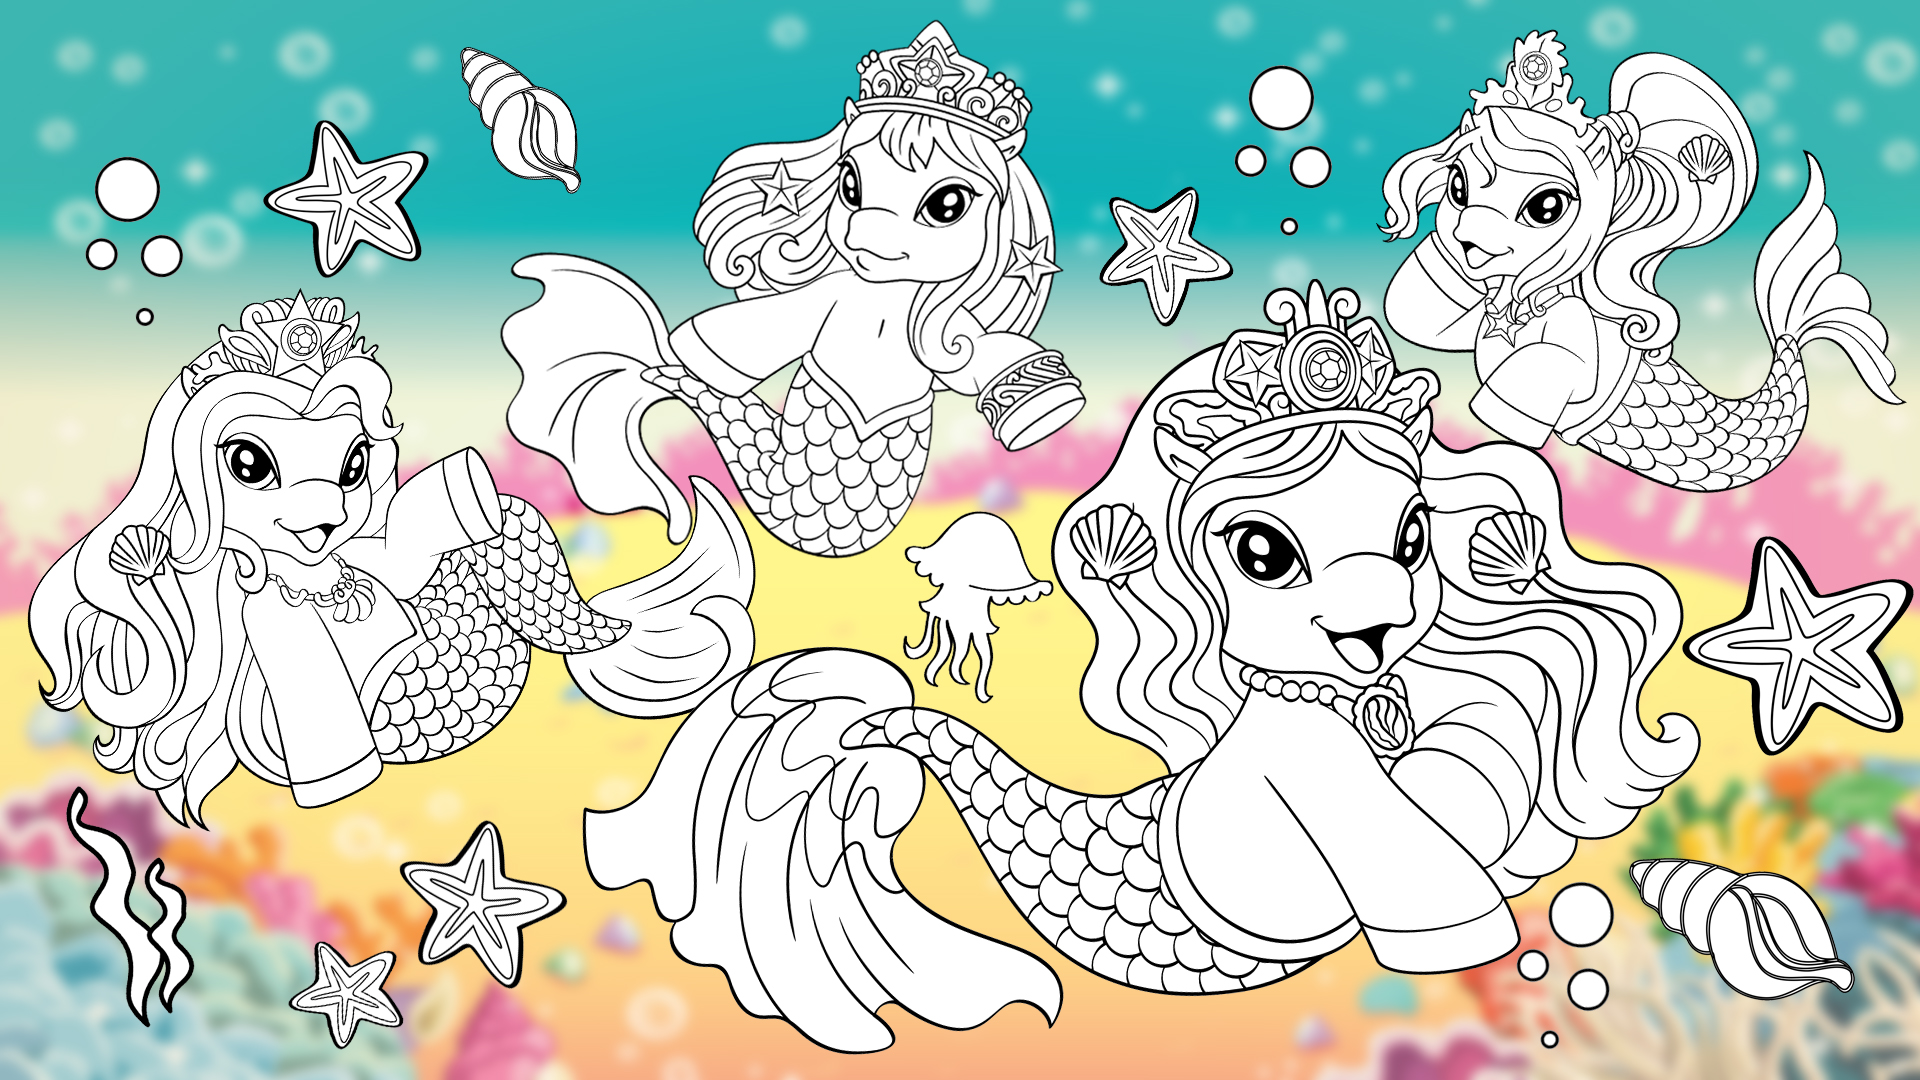 filly mermaids coloring activity dracco toys  my filly